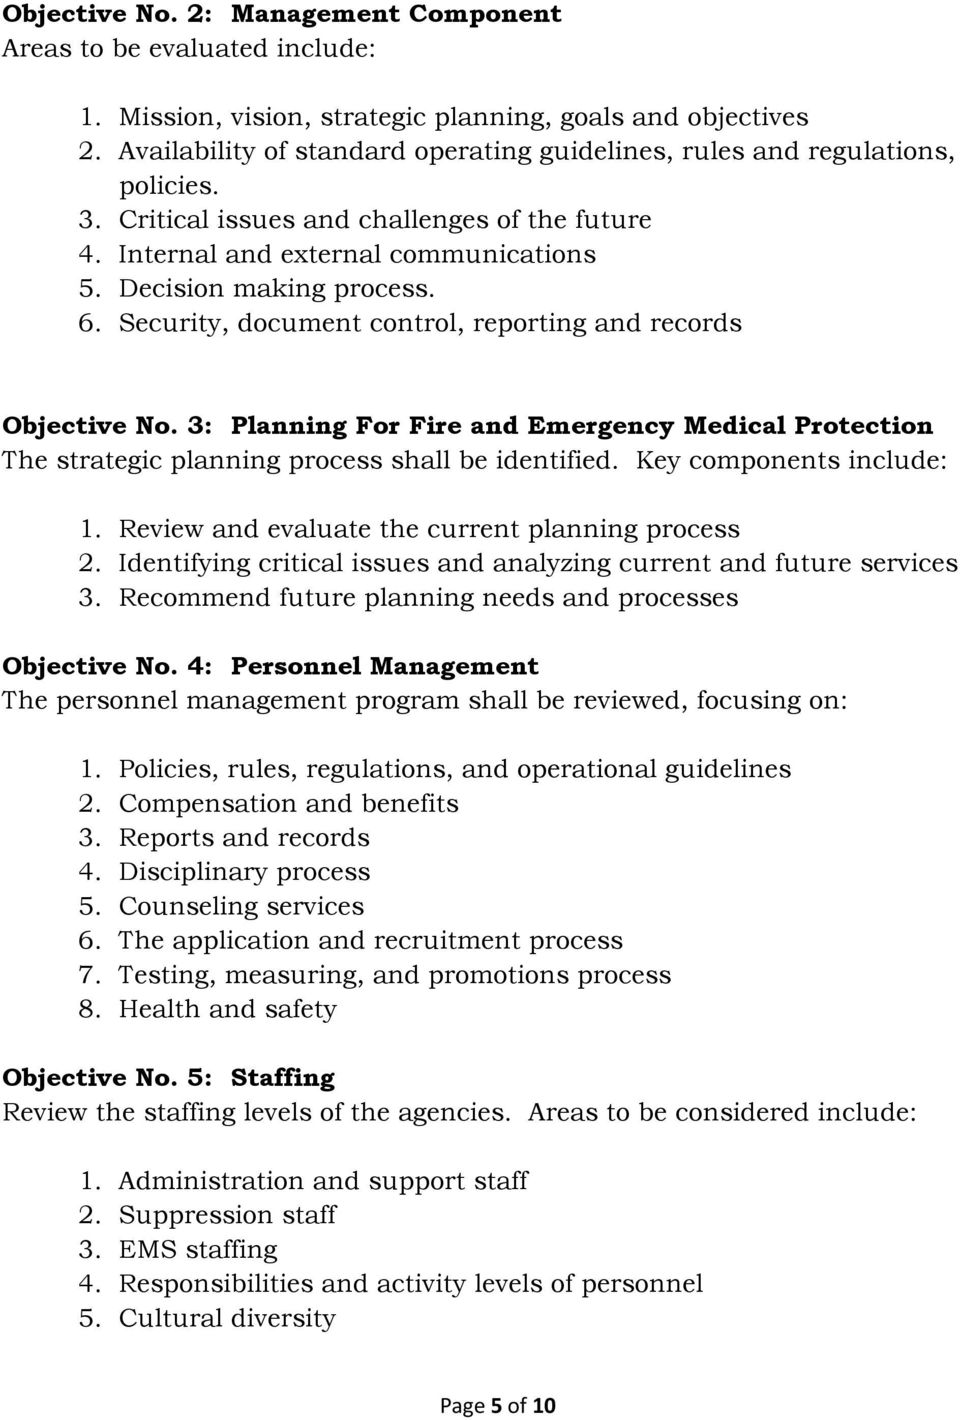 Security, document control, reporting and records Objective No. 3: Planning For Fire and Emergency Medical Protection The strategic planning process shall be identified. Key components include: 1.